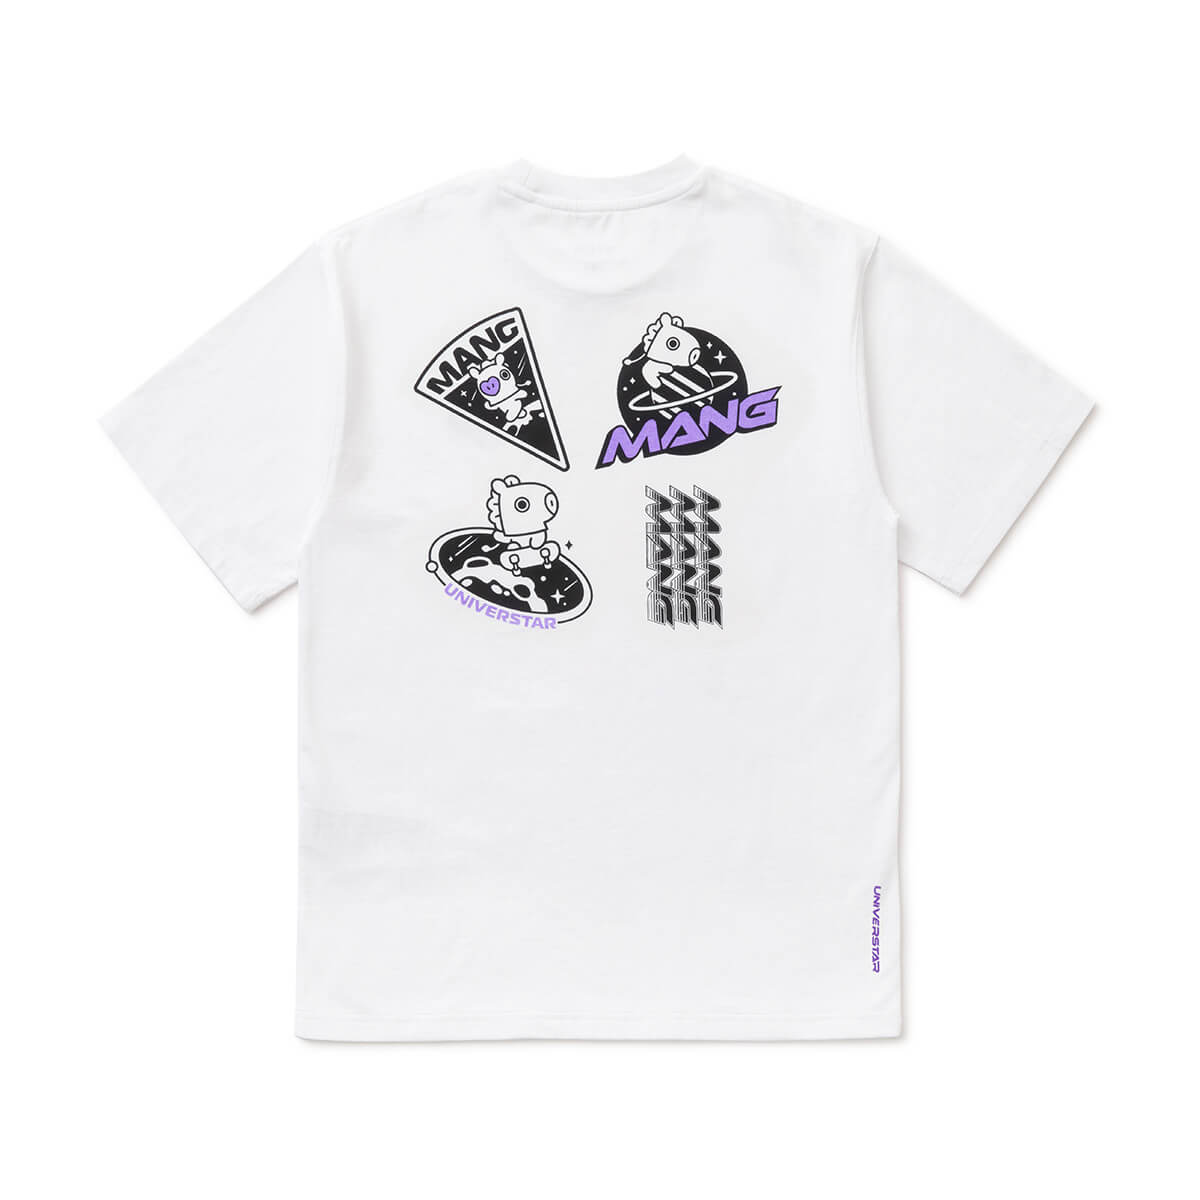 BT21 MANG 20 Space Wappen T-Shirt White